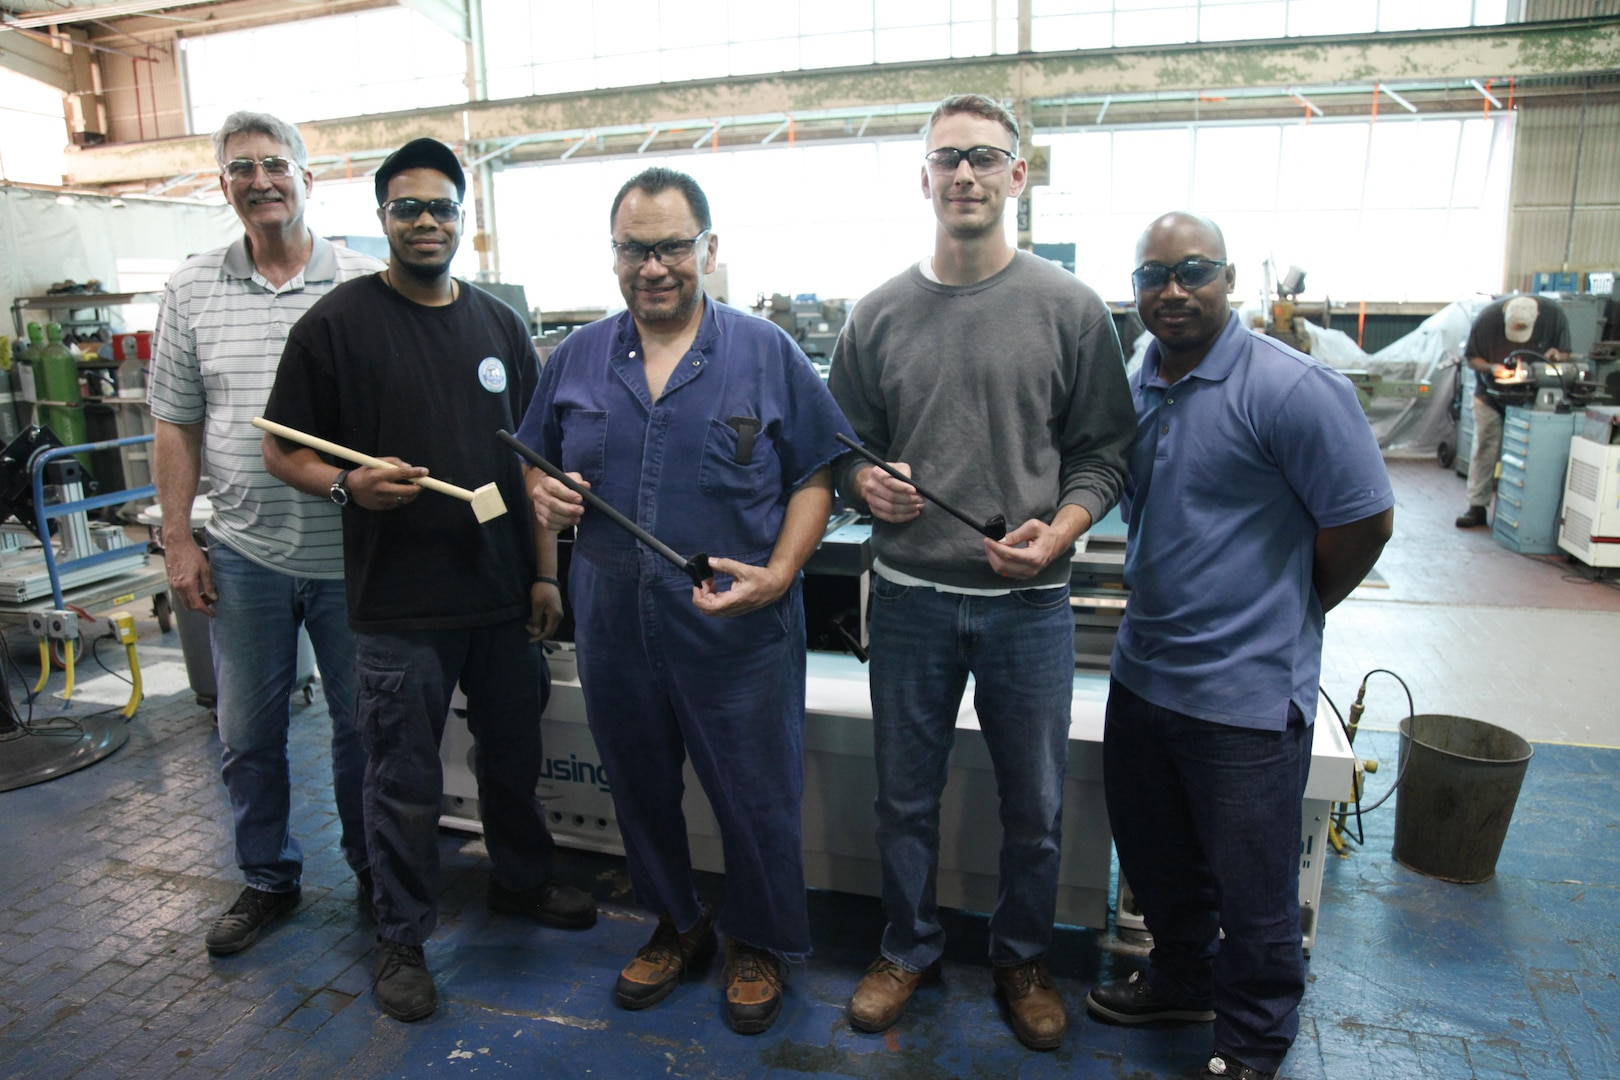 Members of the Norfolk Naval Shipyard Rapid Prototype Lab and Shop 72 (Rigging Department) Lifting and Handling Specialist Jonathan Woodruff showcase the progression of prototypes of the Tie Bolt Anti-Rotation Tool.